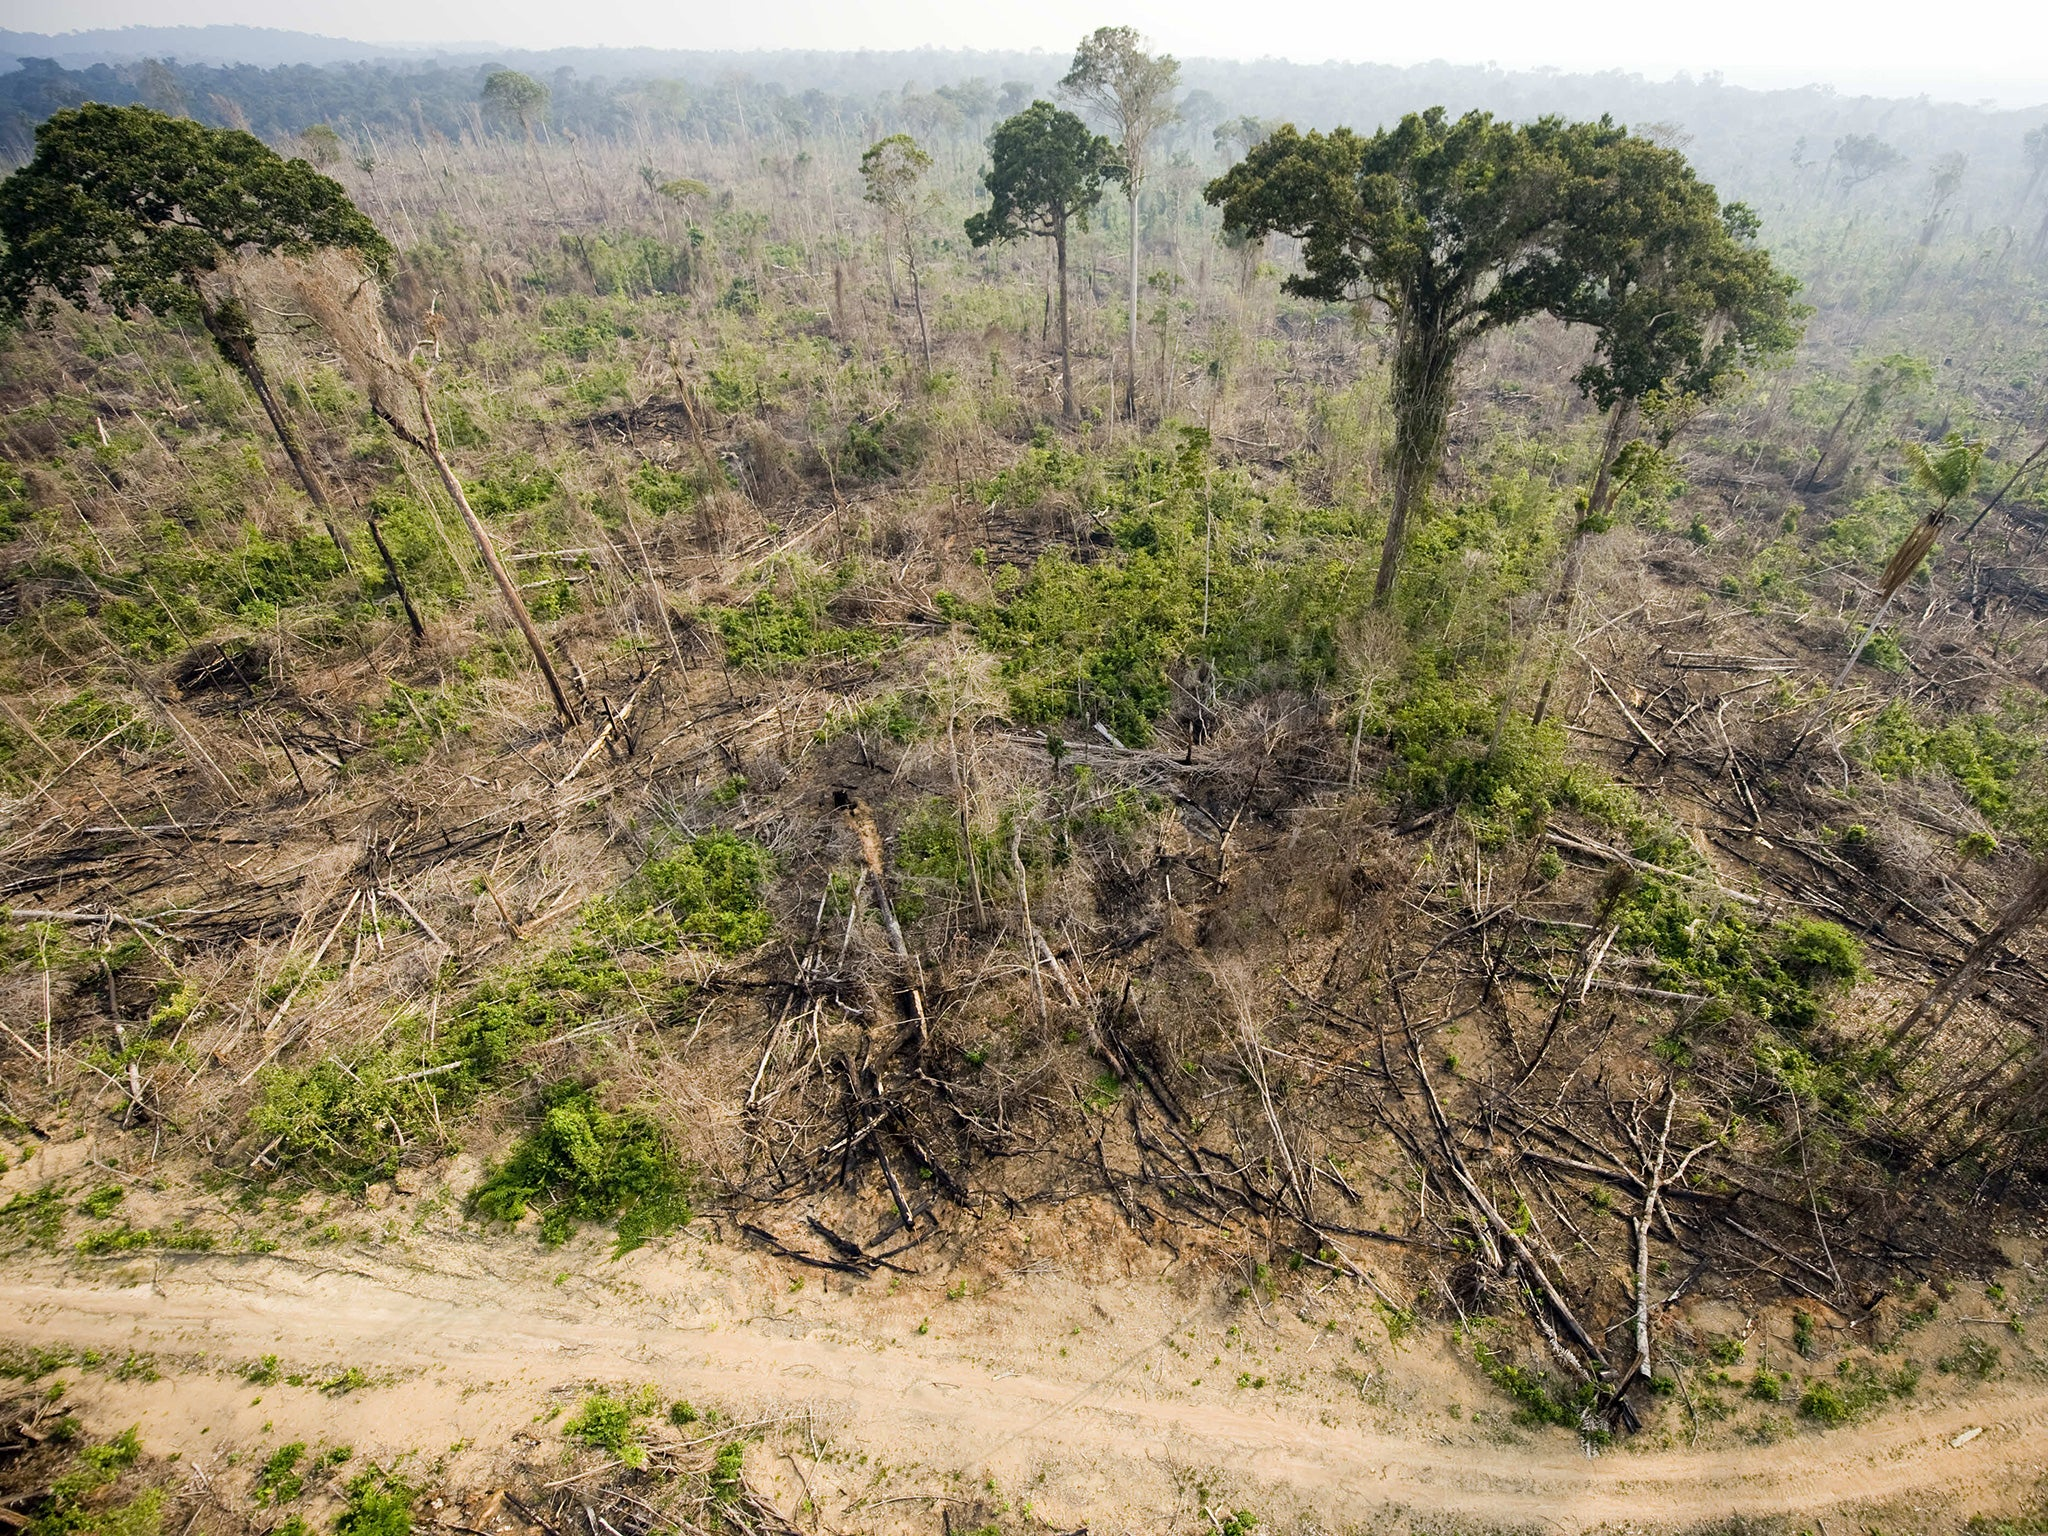 Tropical forests are now emitting more carbon than oxygen, alarming new study finds